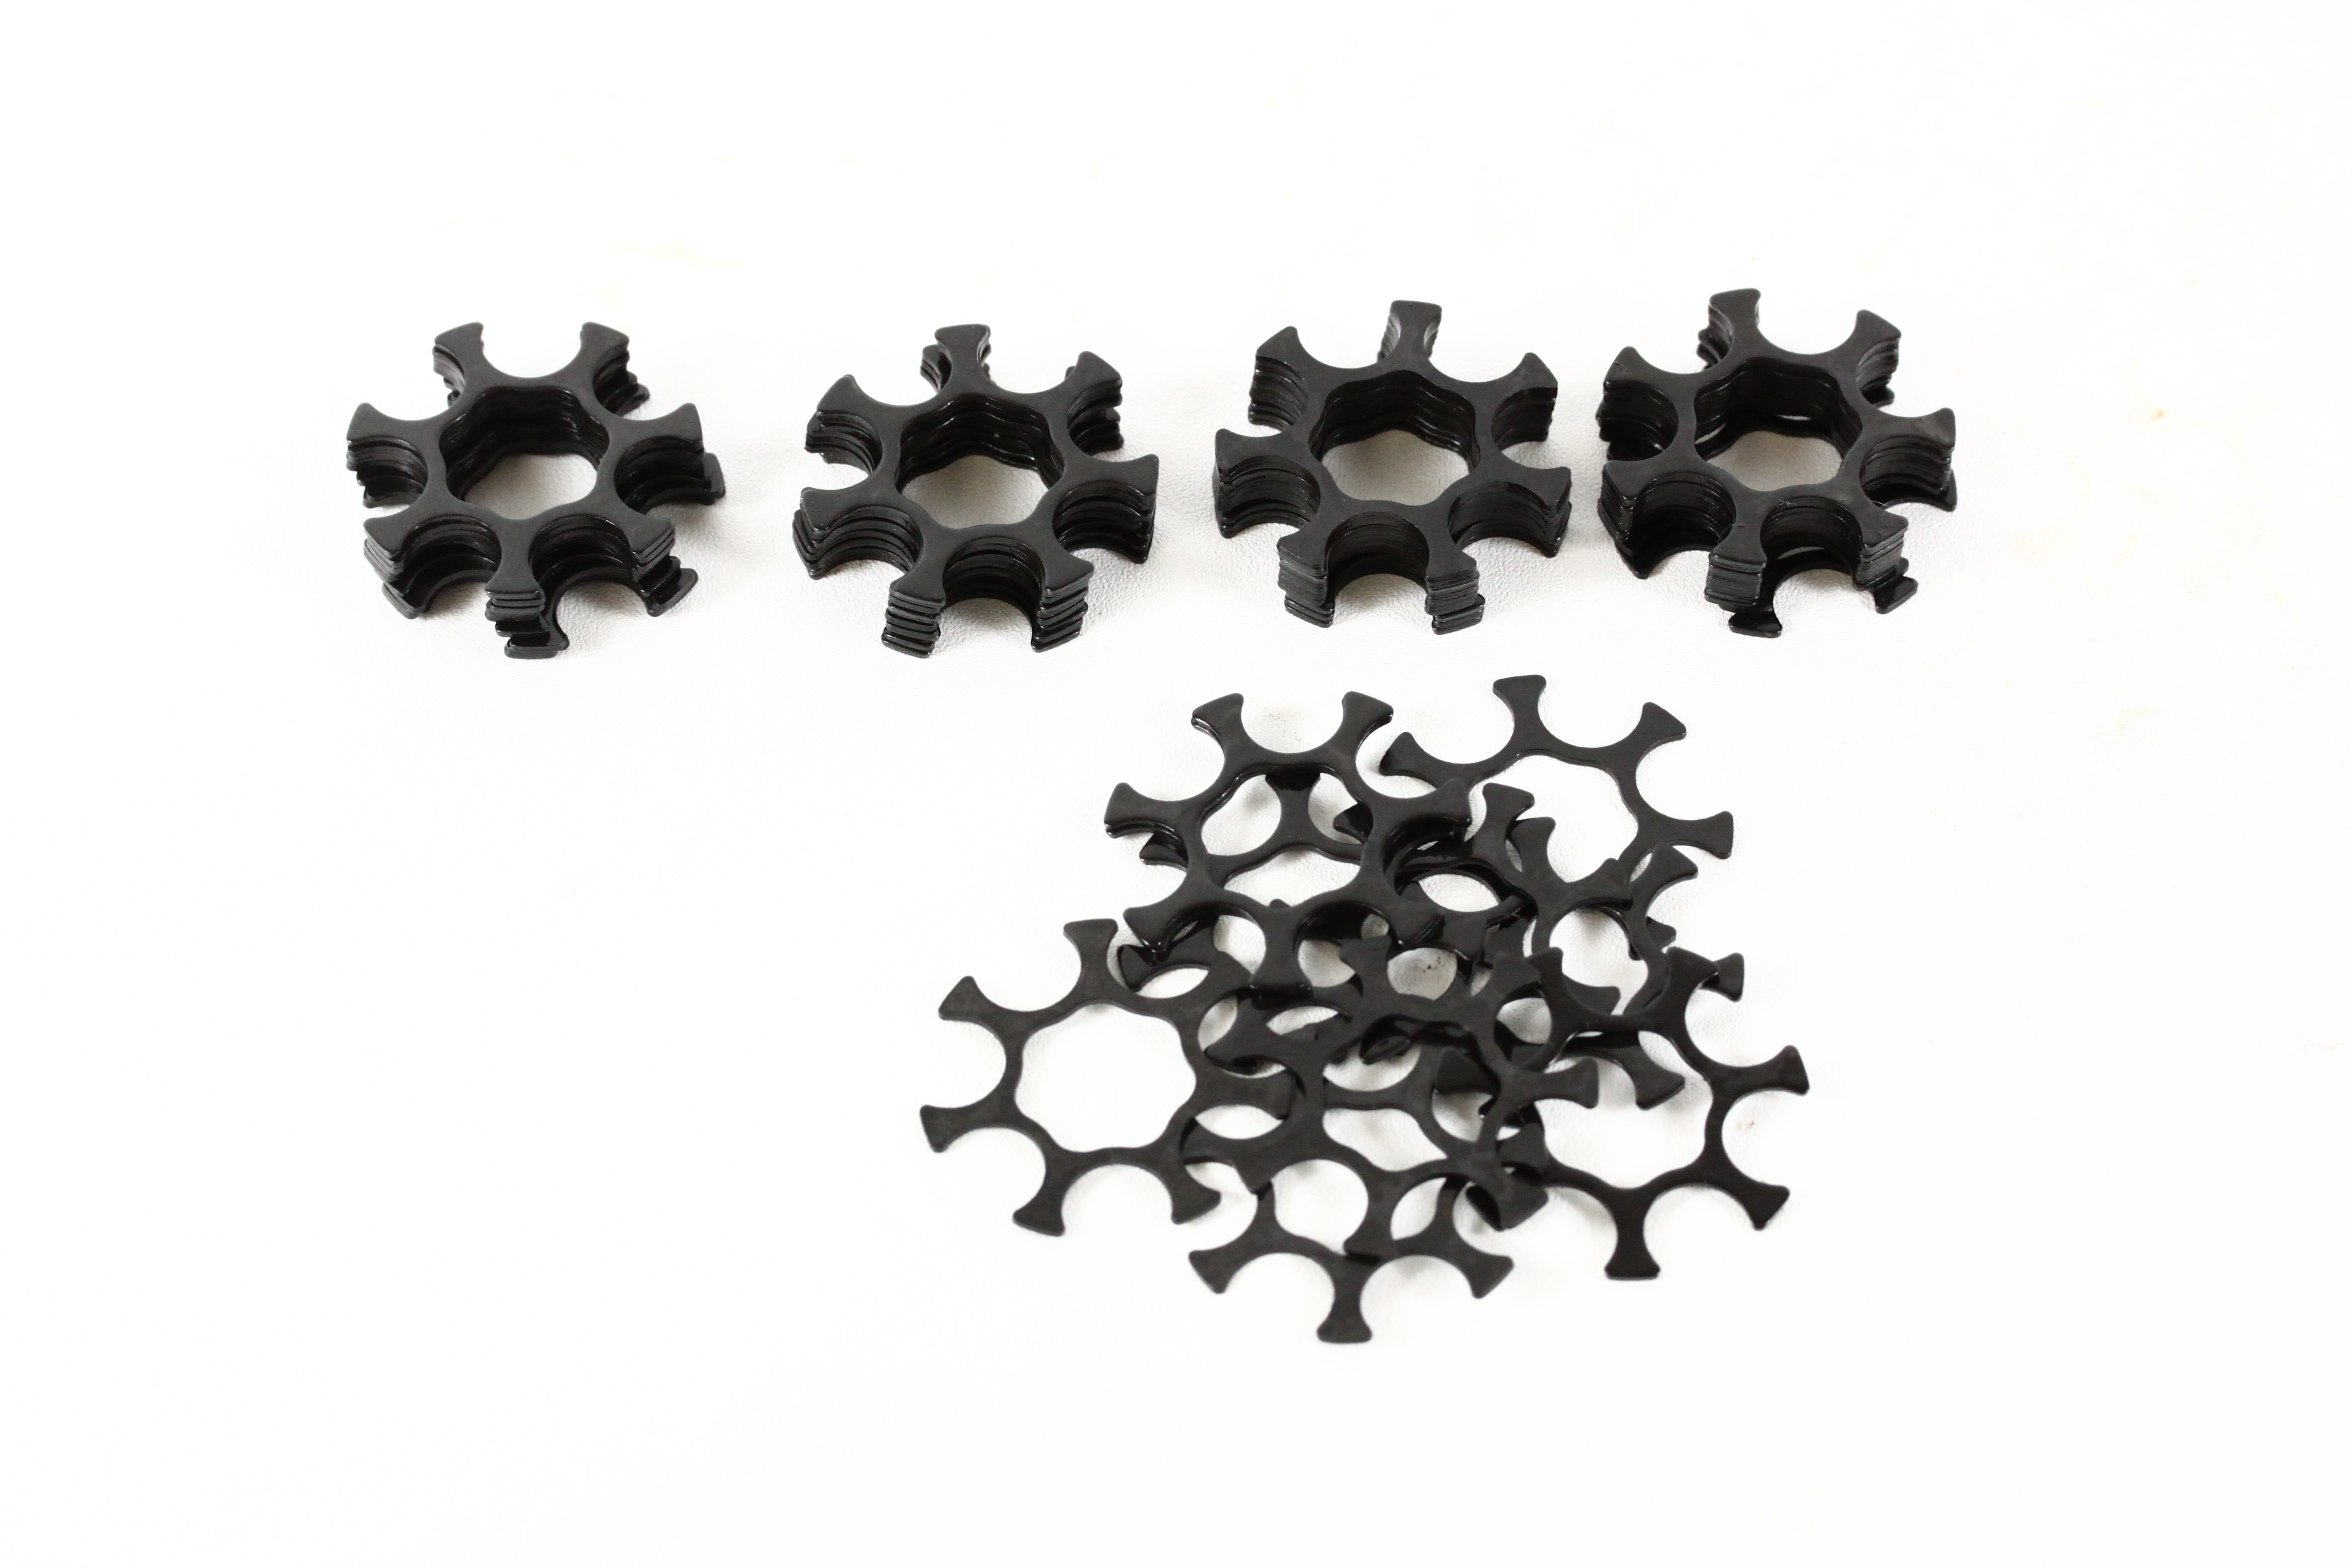 Speed Beez Full Moon Clips S&W 986 7 shot 9mm (Package of 50)